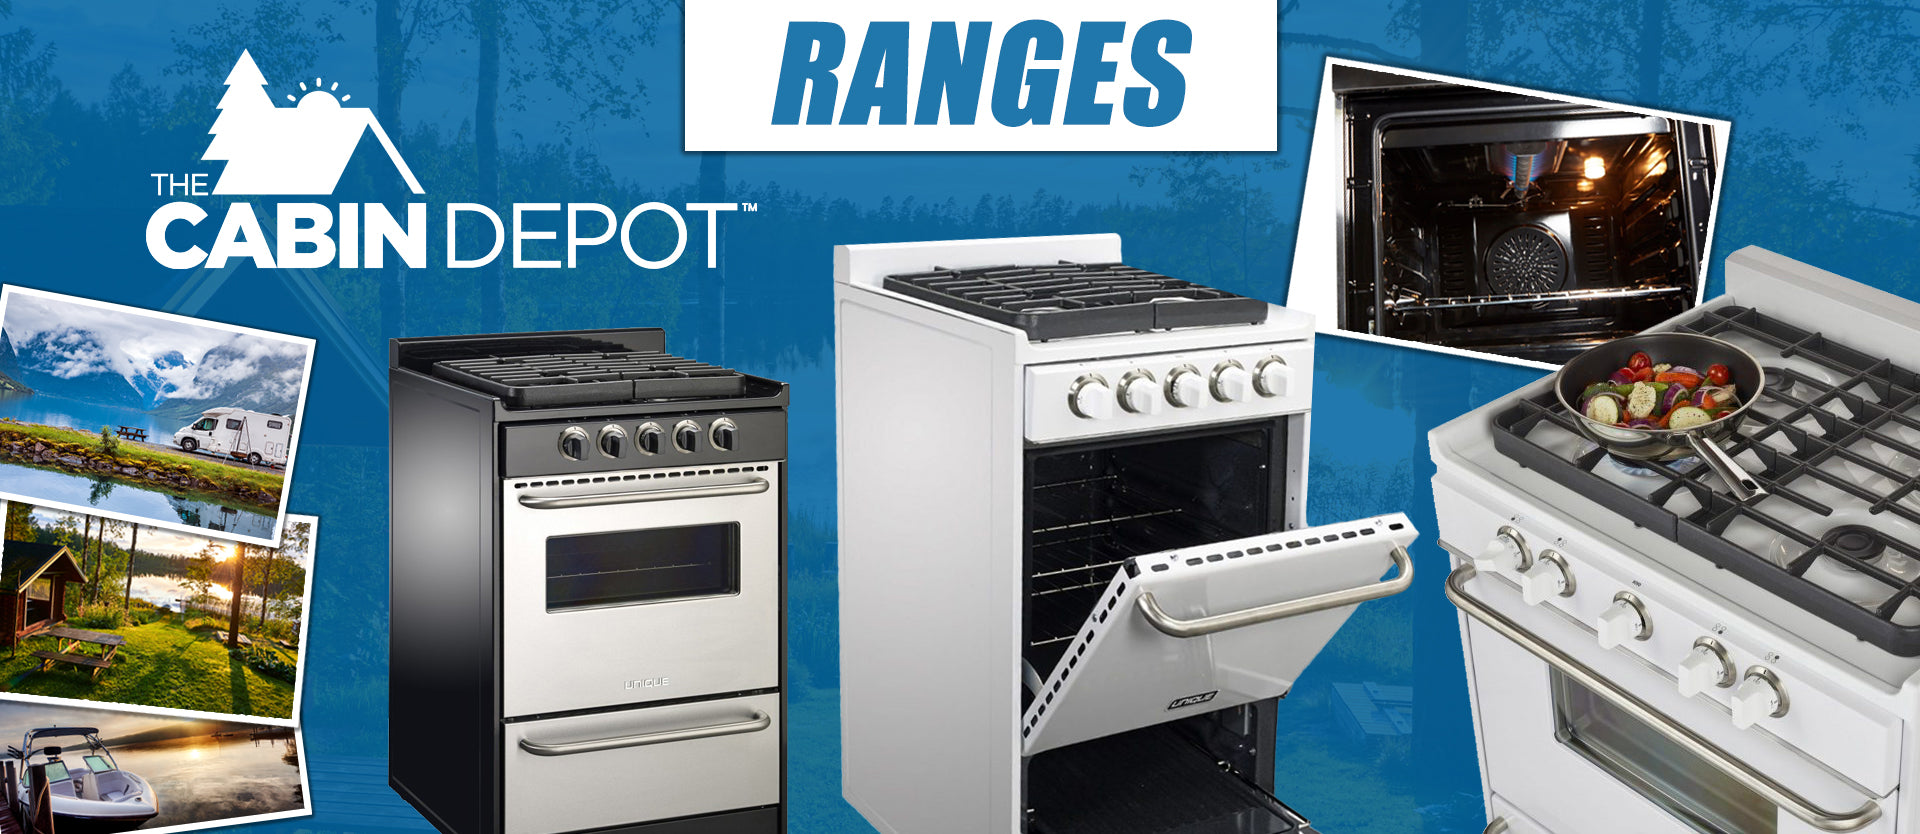 Propane Ranges Stoves Canada The Cabin Depot™ 1-844-603-4743